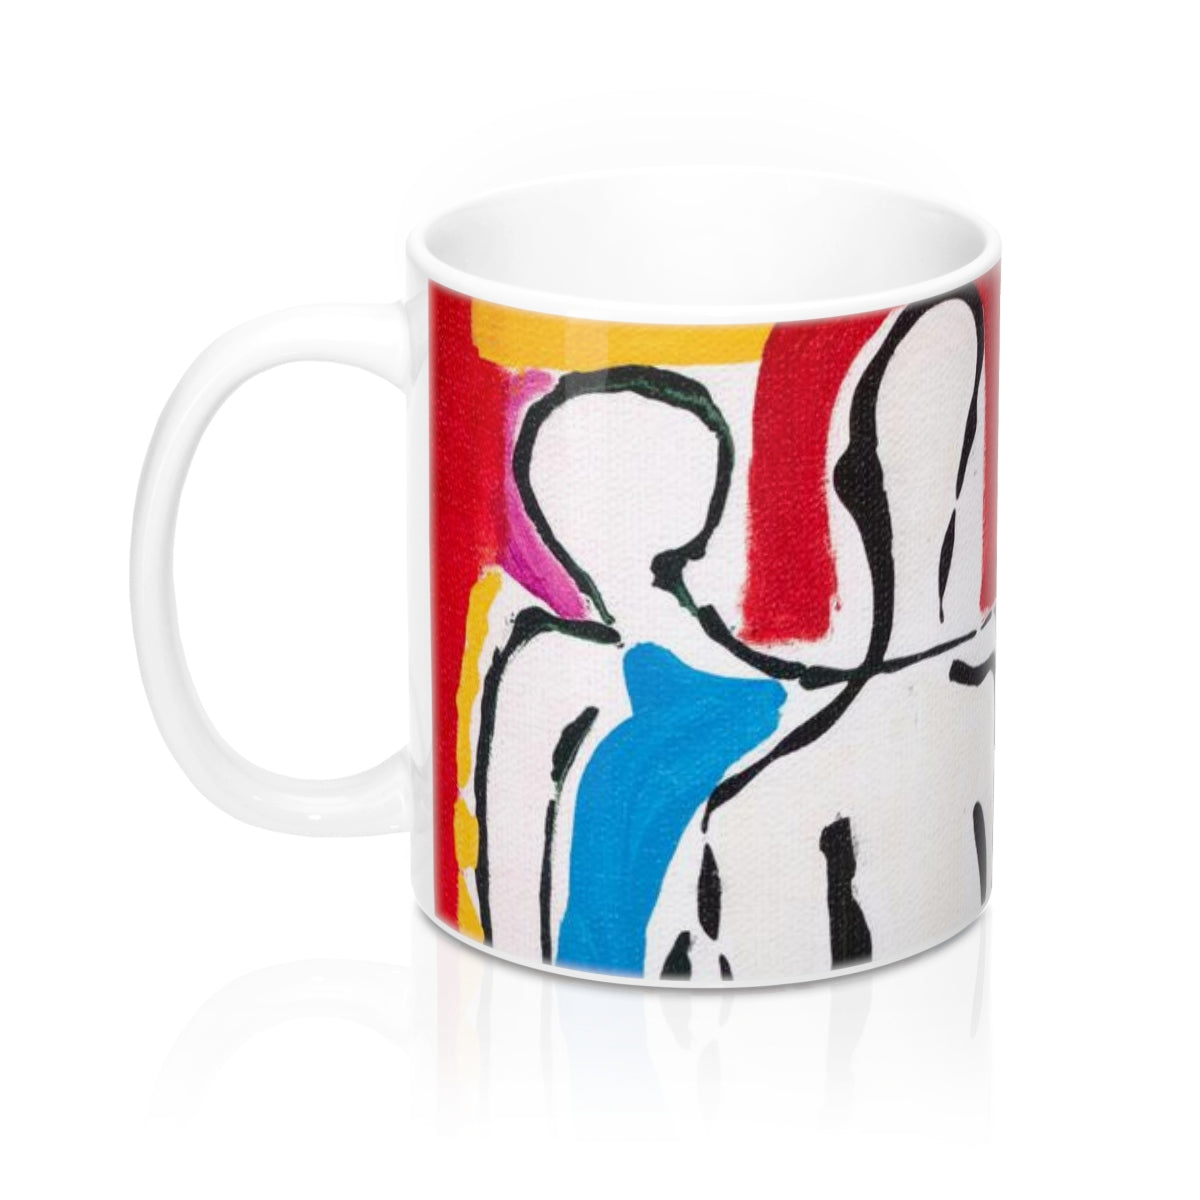 4 BODIES  C-Handle Mug 11 oz.